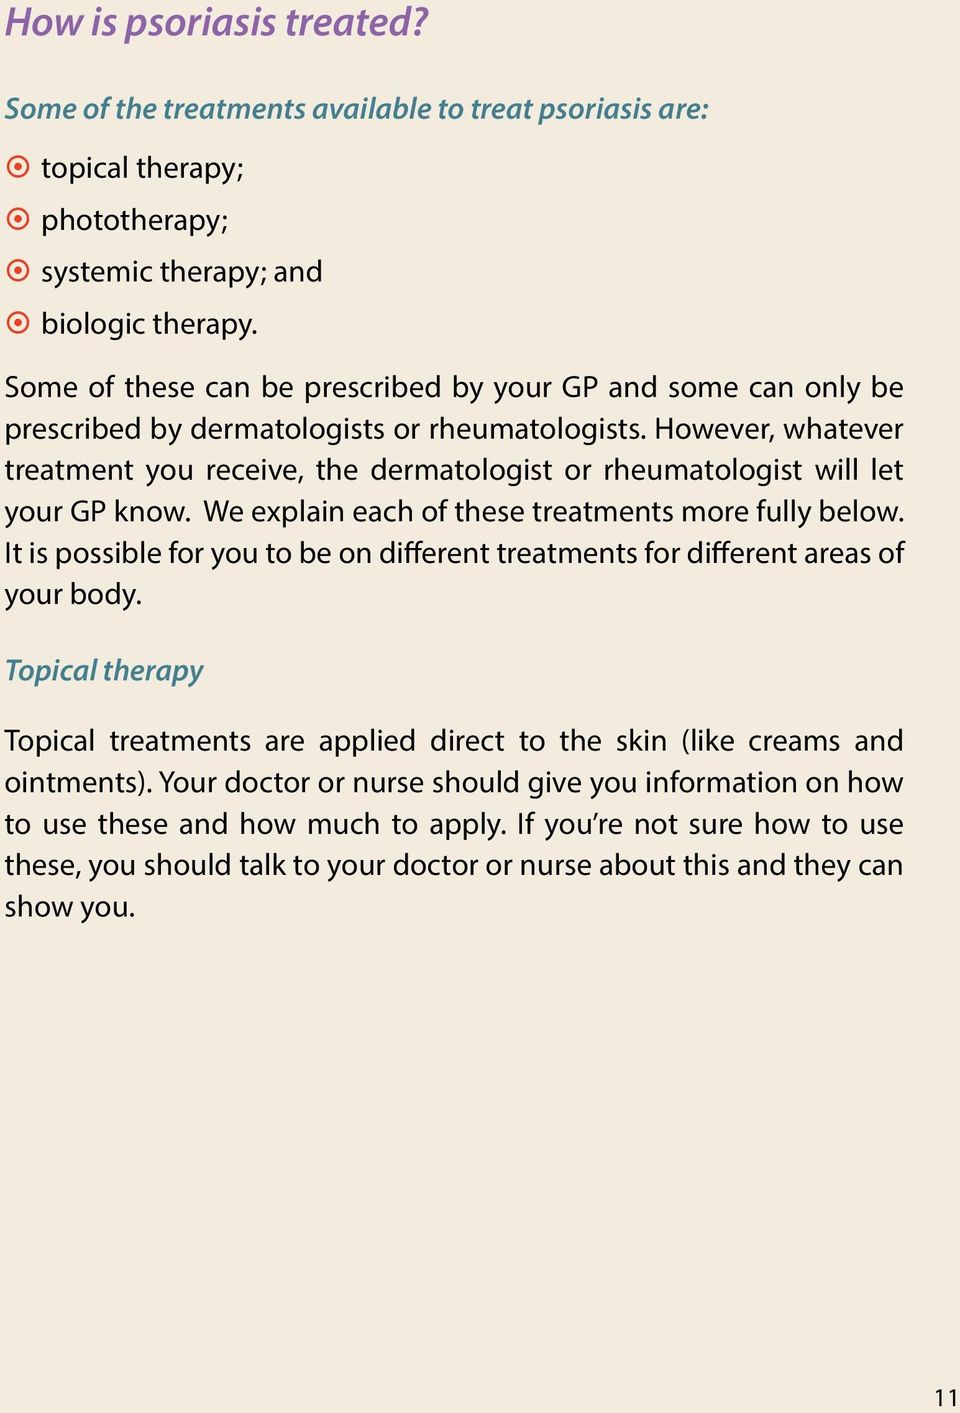 However, whatever treatment you receive, the dermatologist or rheumatologist will let your GP know. We explain each of these treatments more fully below.